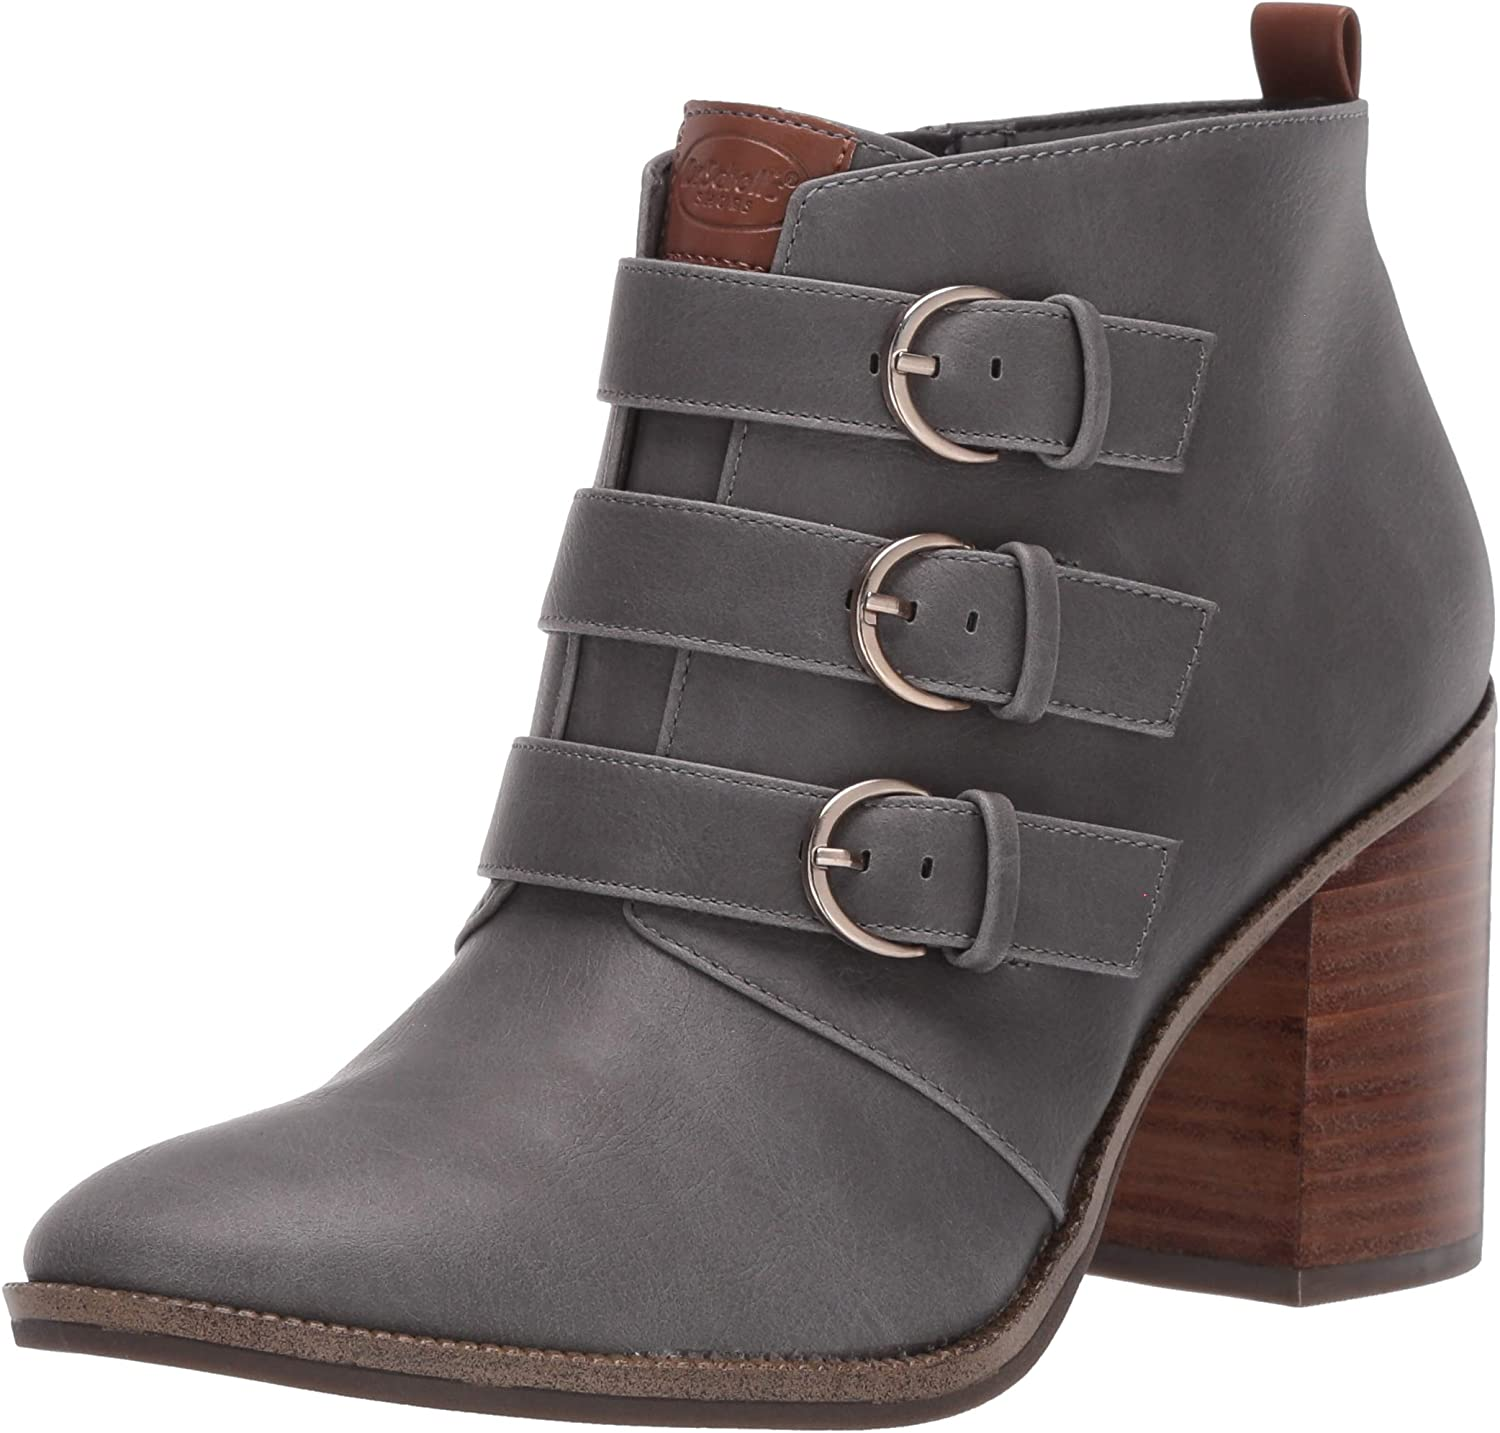 Dr. 直送商品 Scholl's Shoes Women's Leave Boot It Ankle セール特価 Shooties